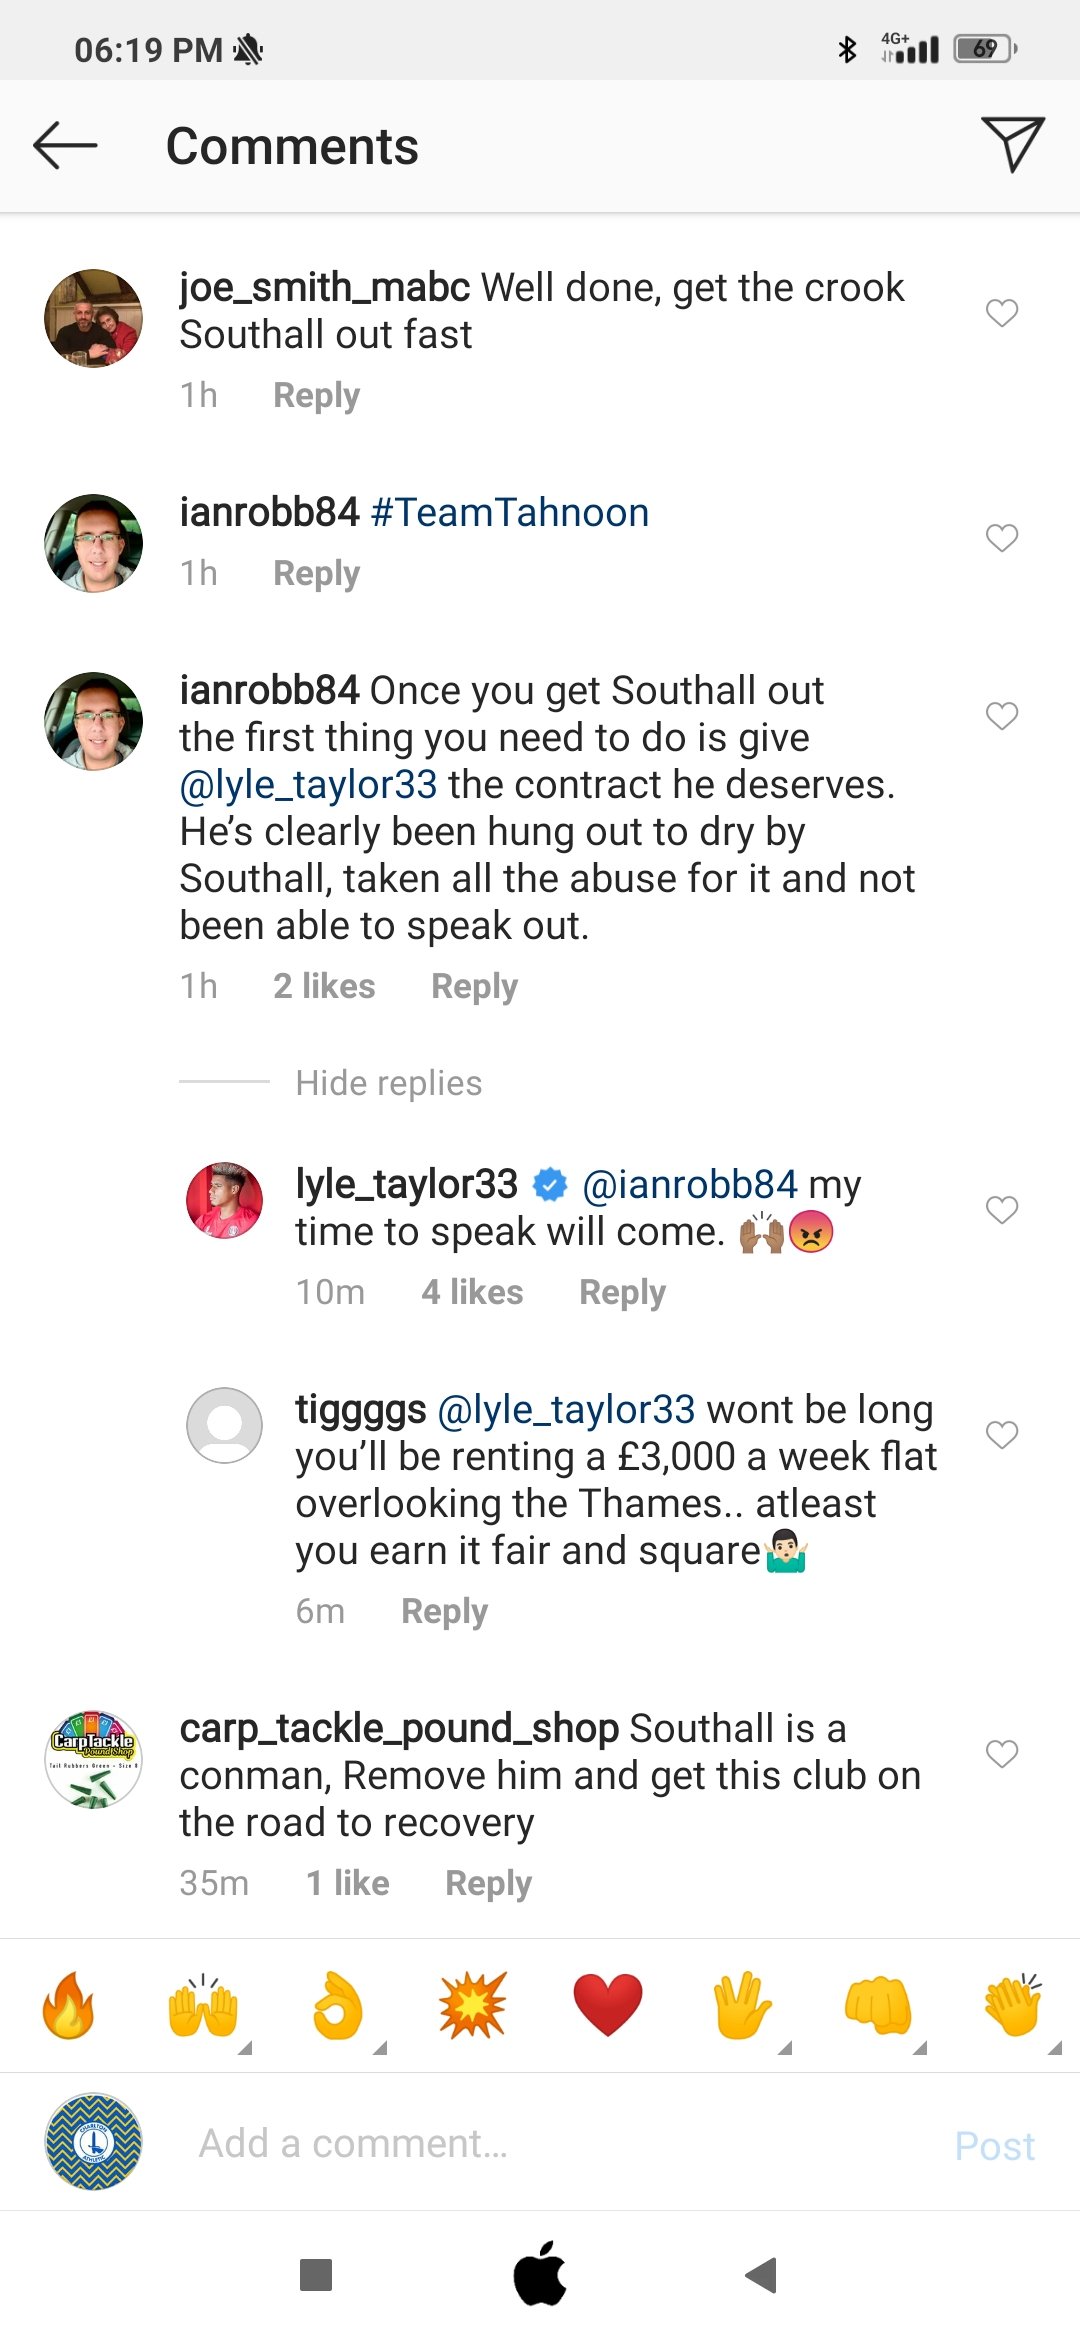 Comment from Lyle